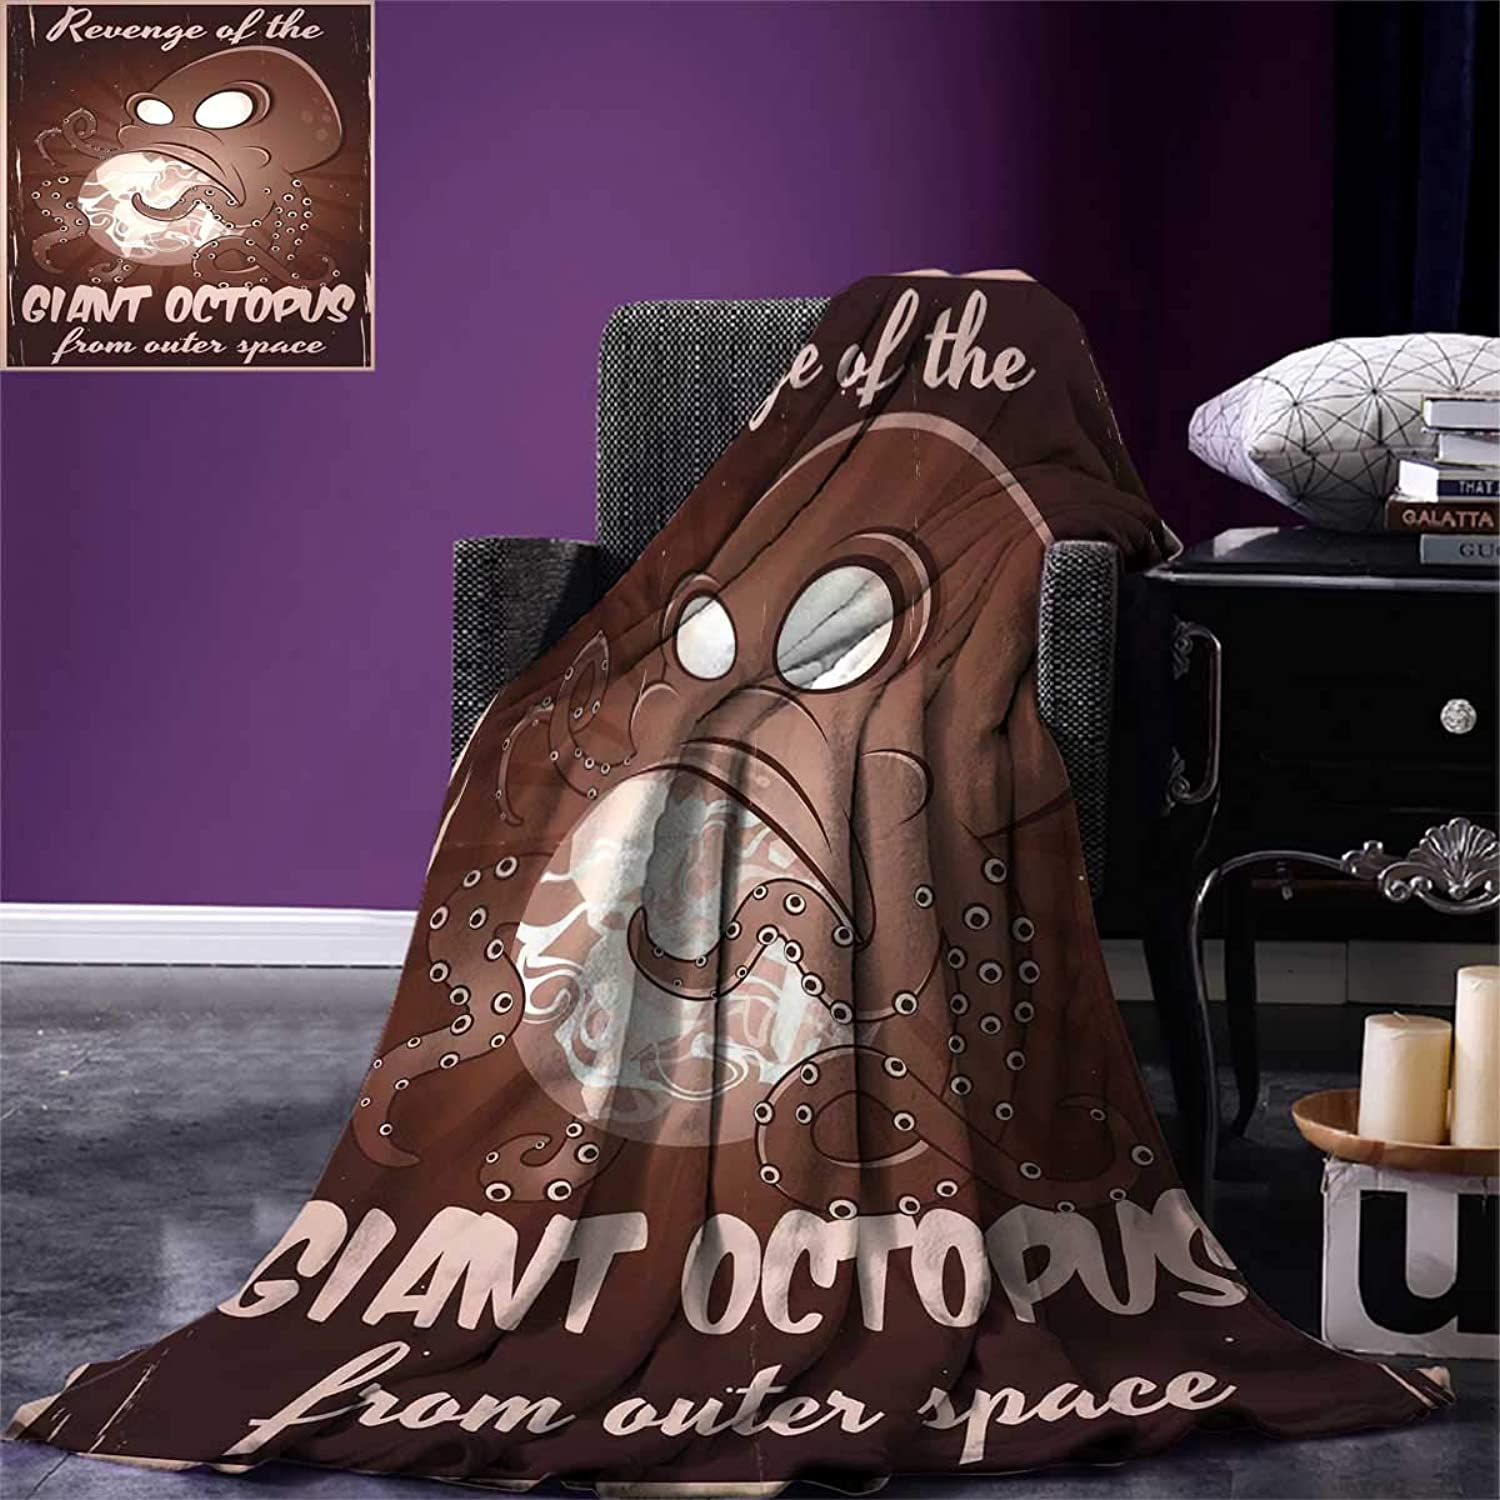 Octopus,Wearable Blanket,Retro Old Poster Print of Cartoon Monster Alien Octopus with Tentacles Attacking Earth,All Weather Blanket,Brown,Size:60 x36